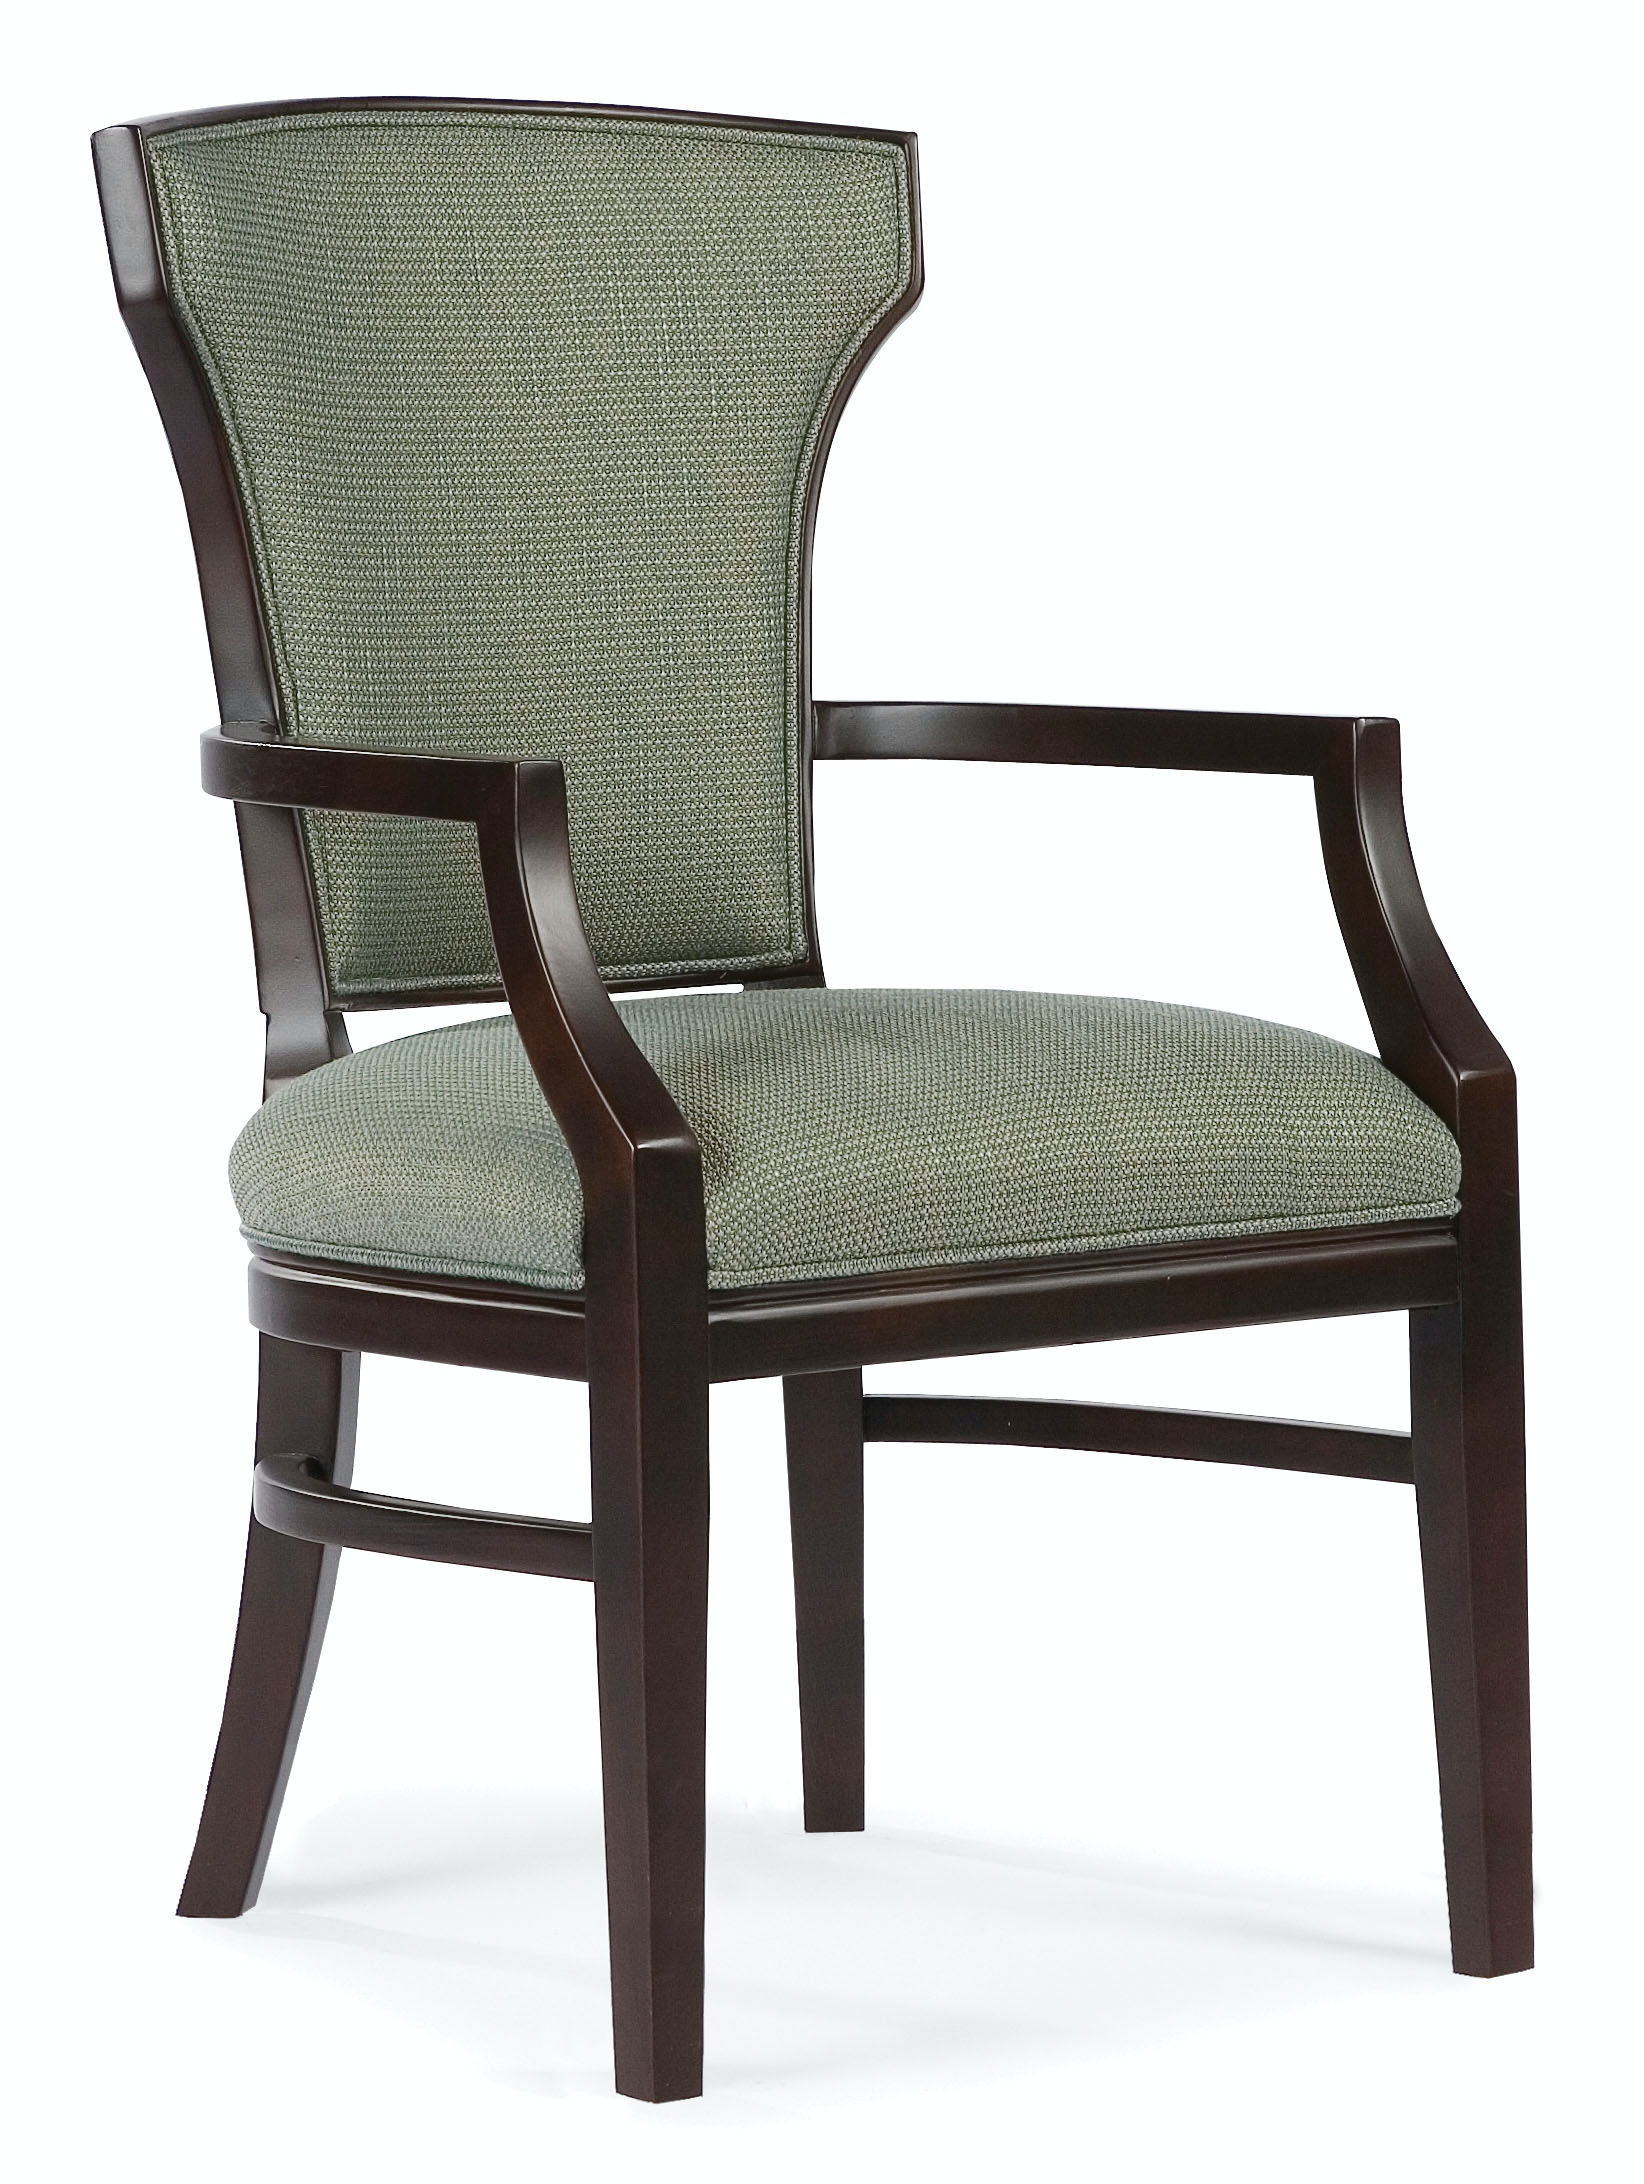 Fairfield Chair pany Dining Room Occasional Arm Chair